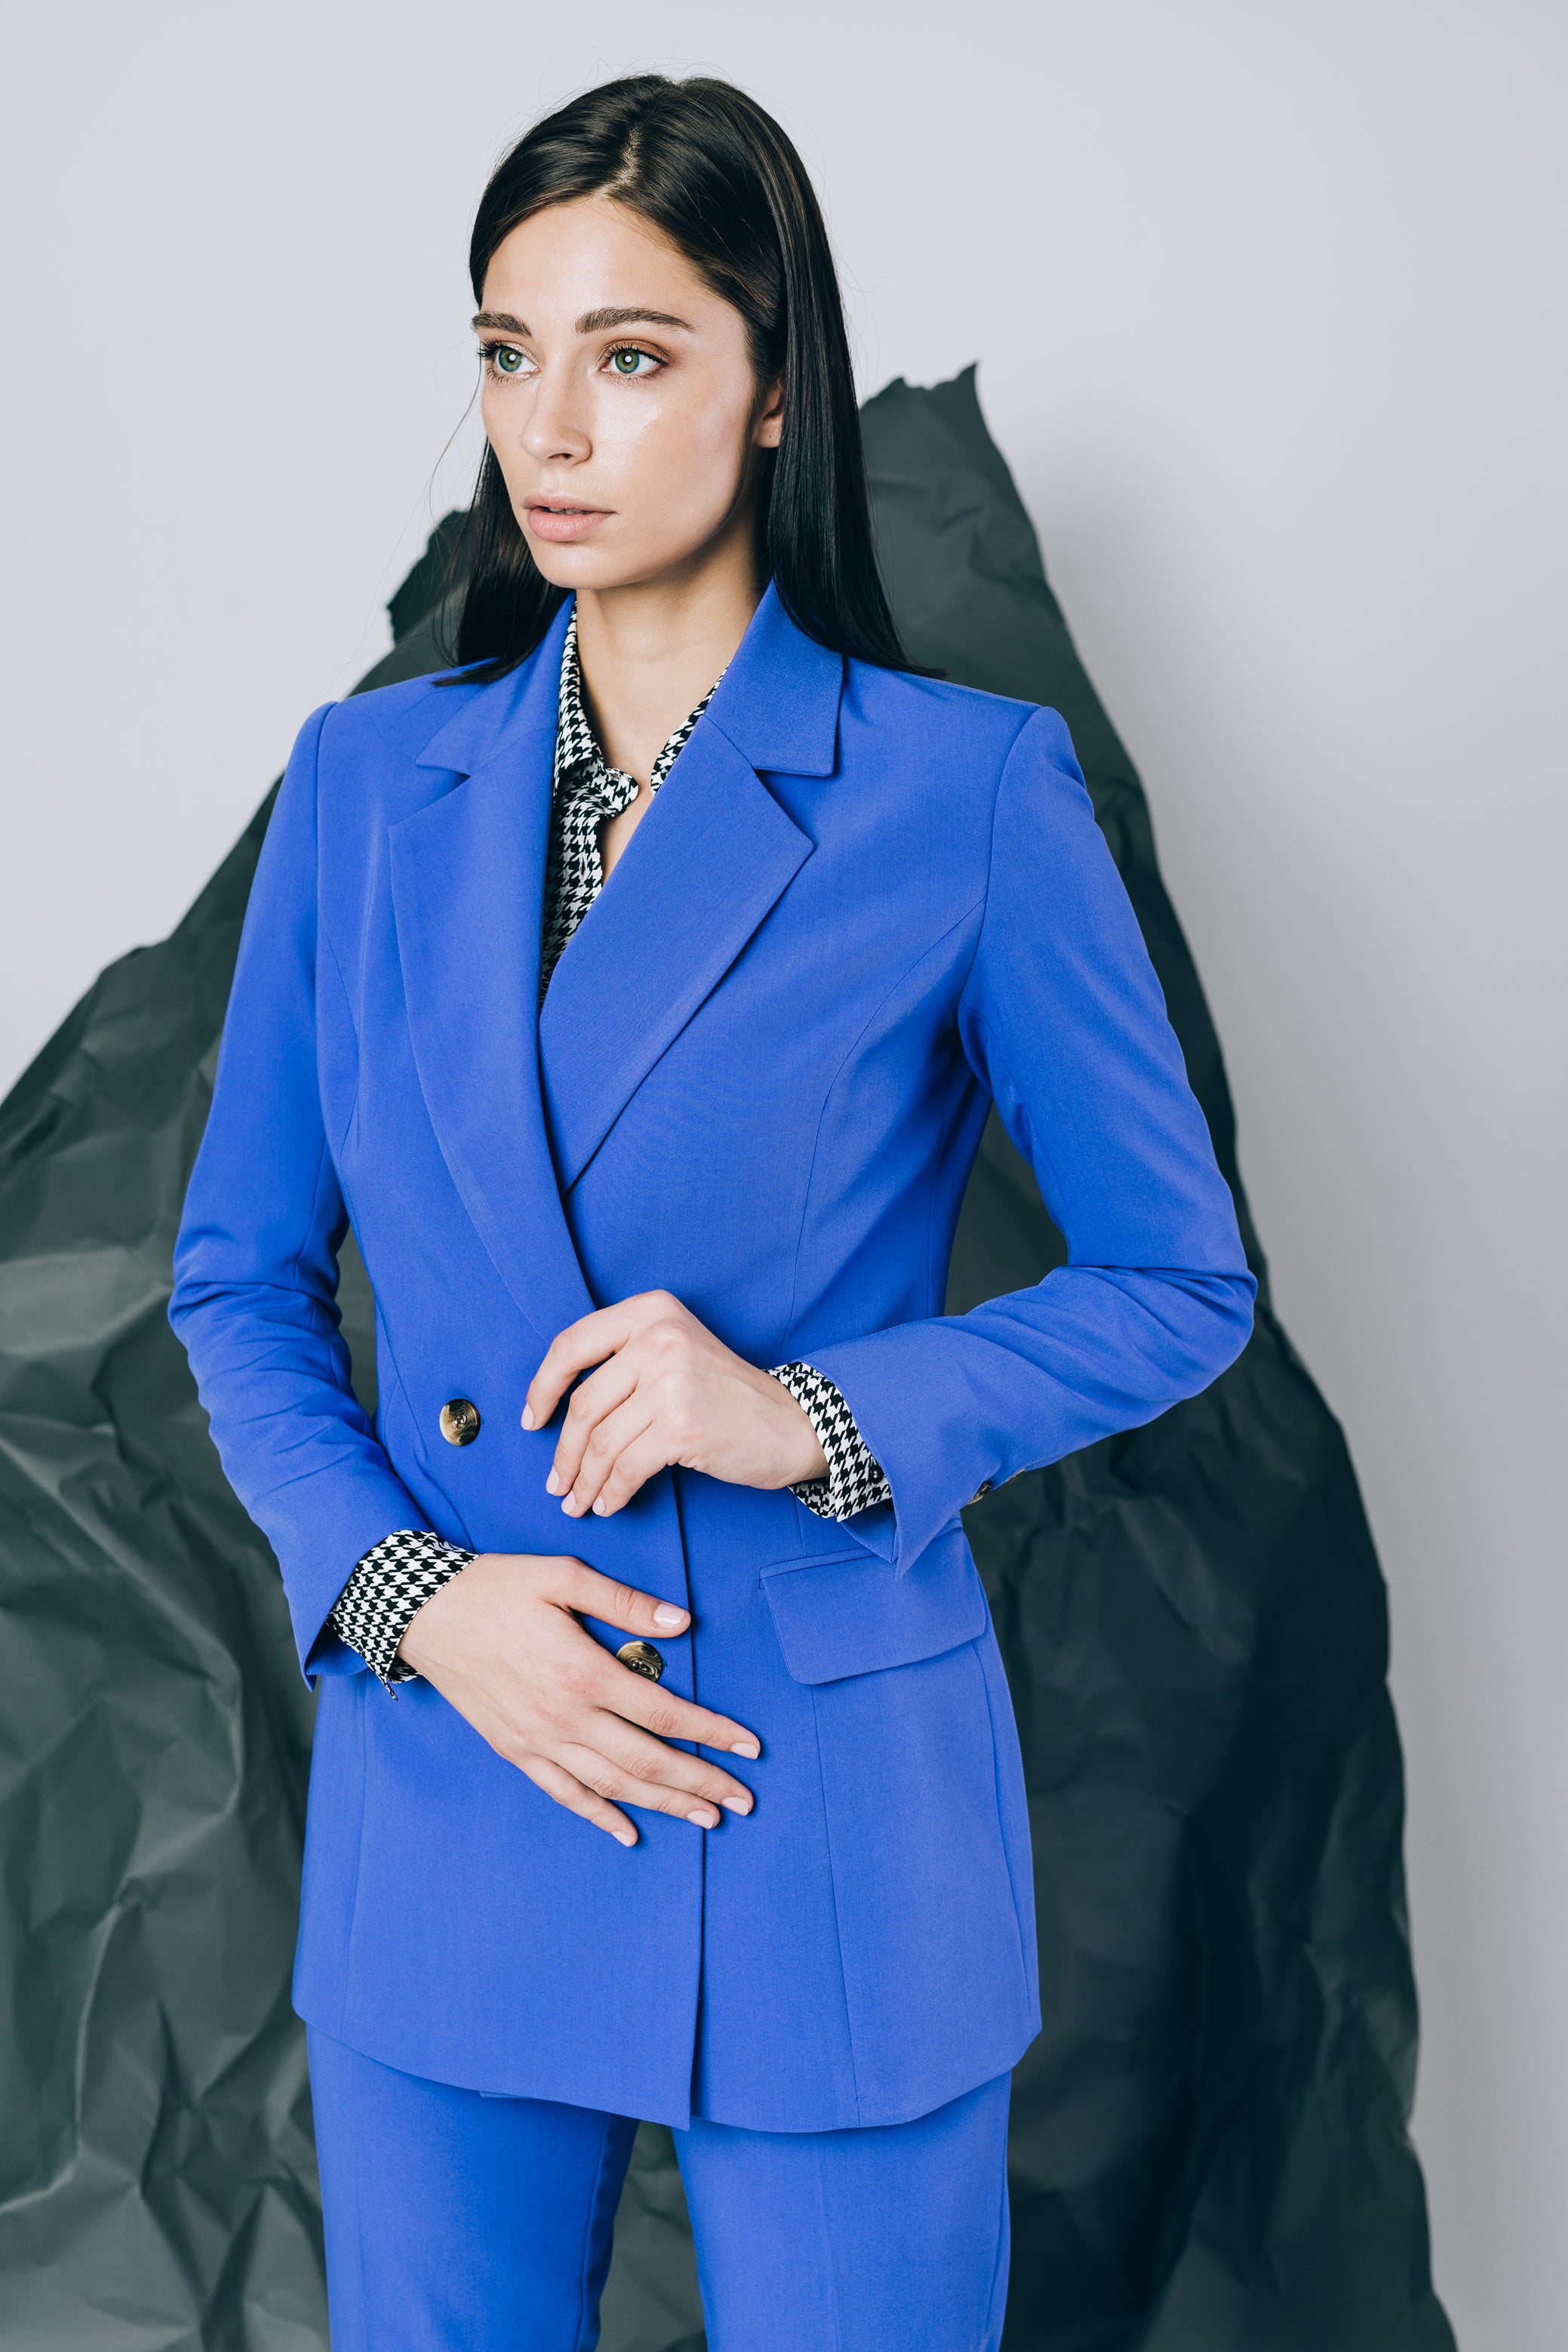 Double-breasted blazer in spectrum blue